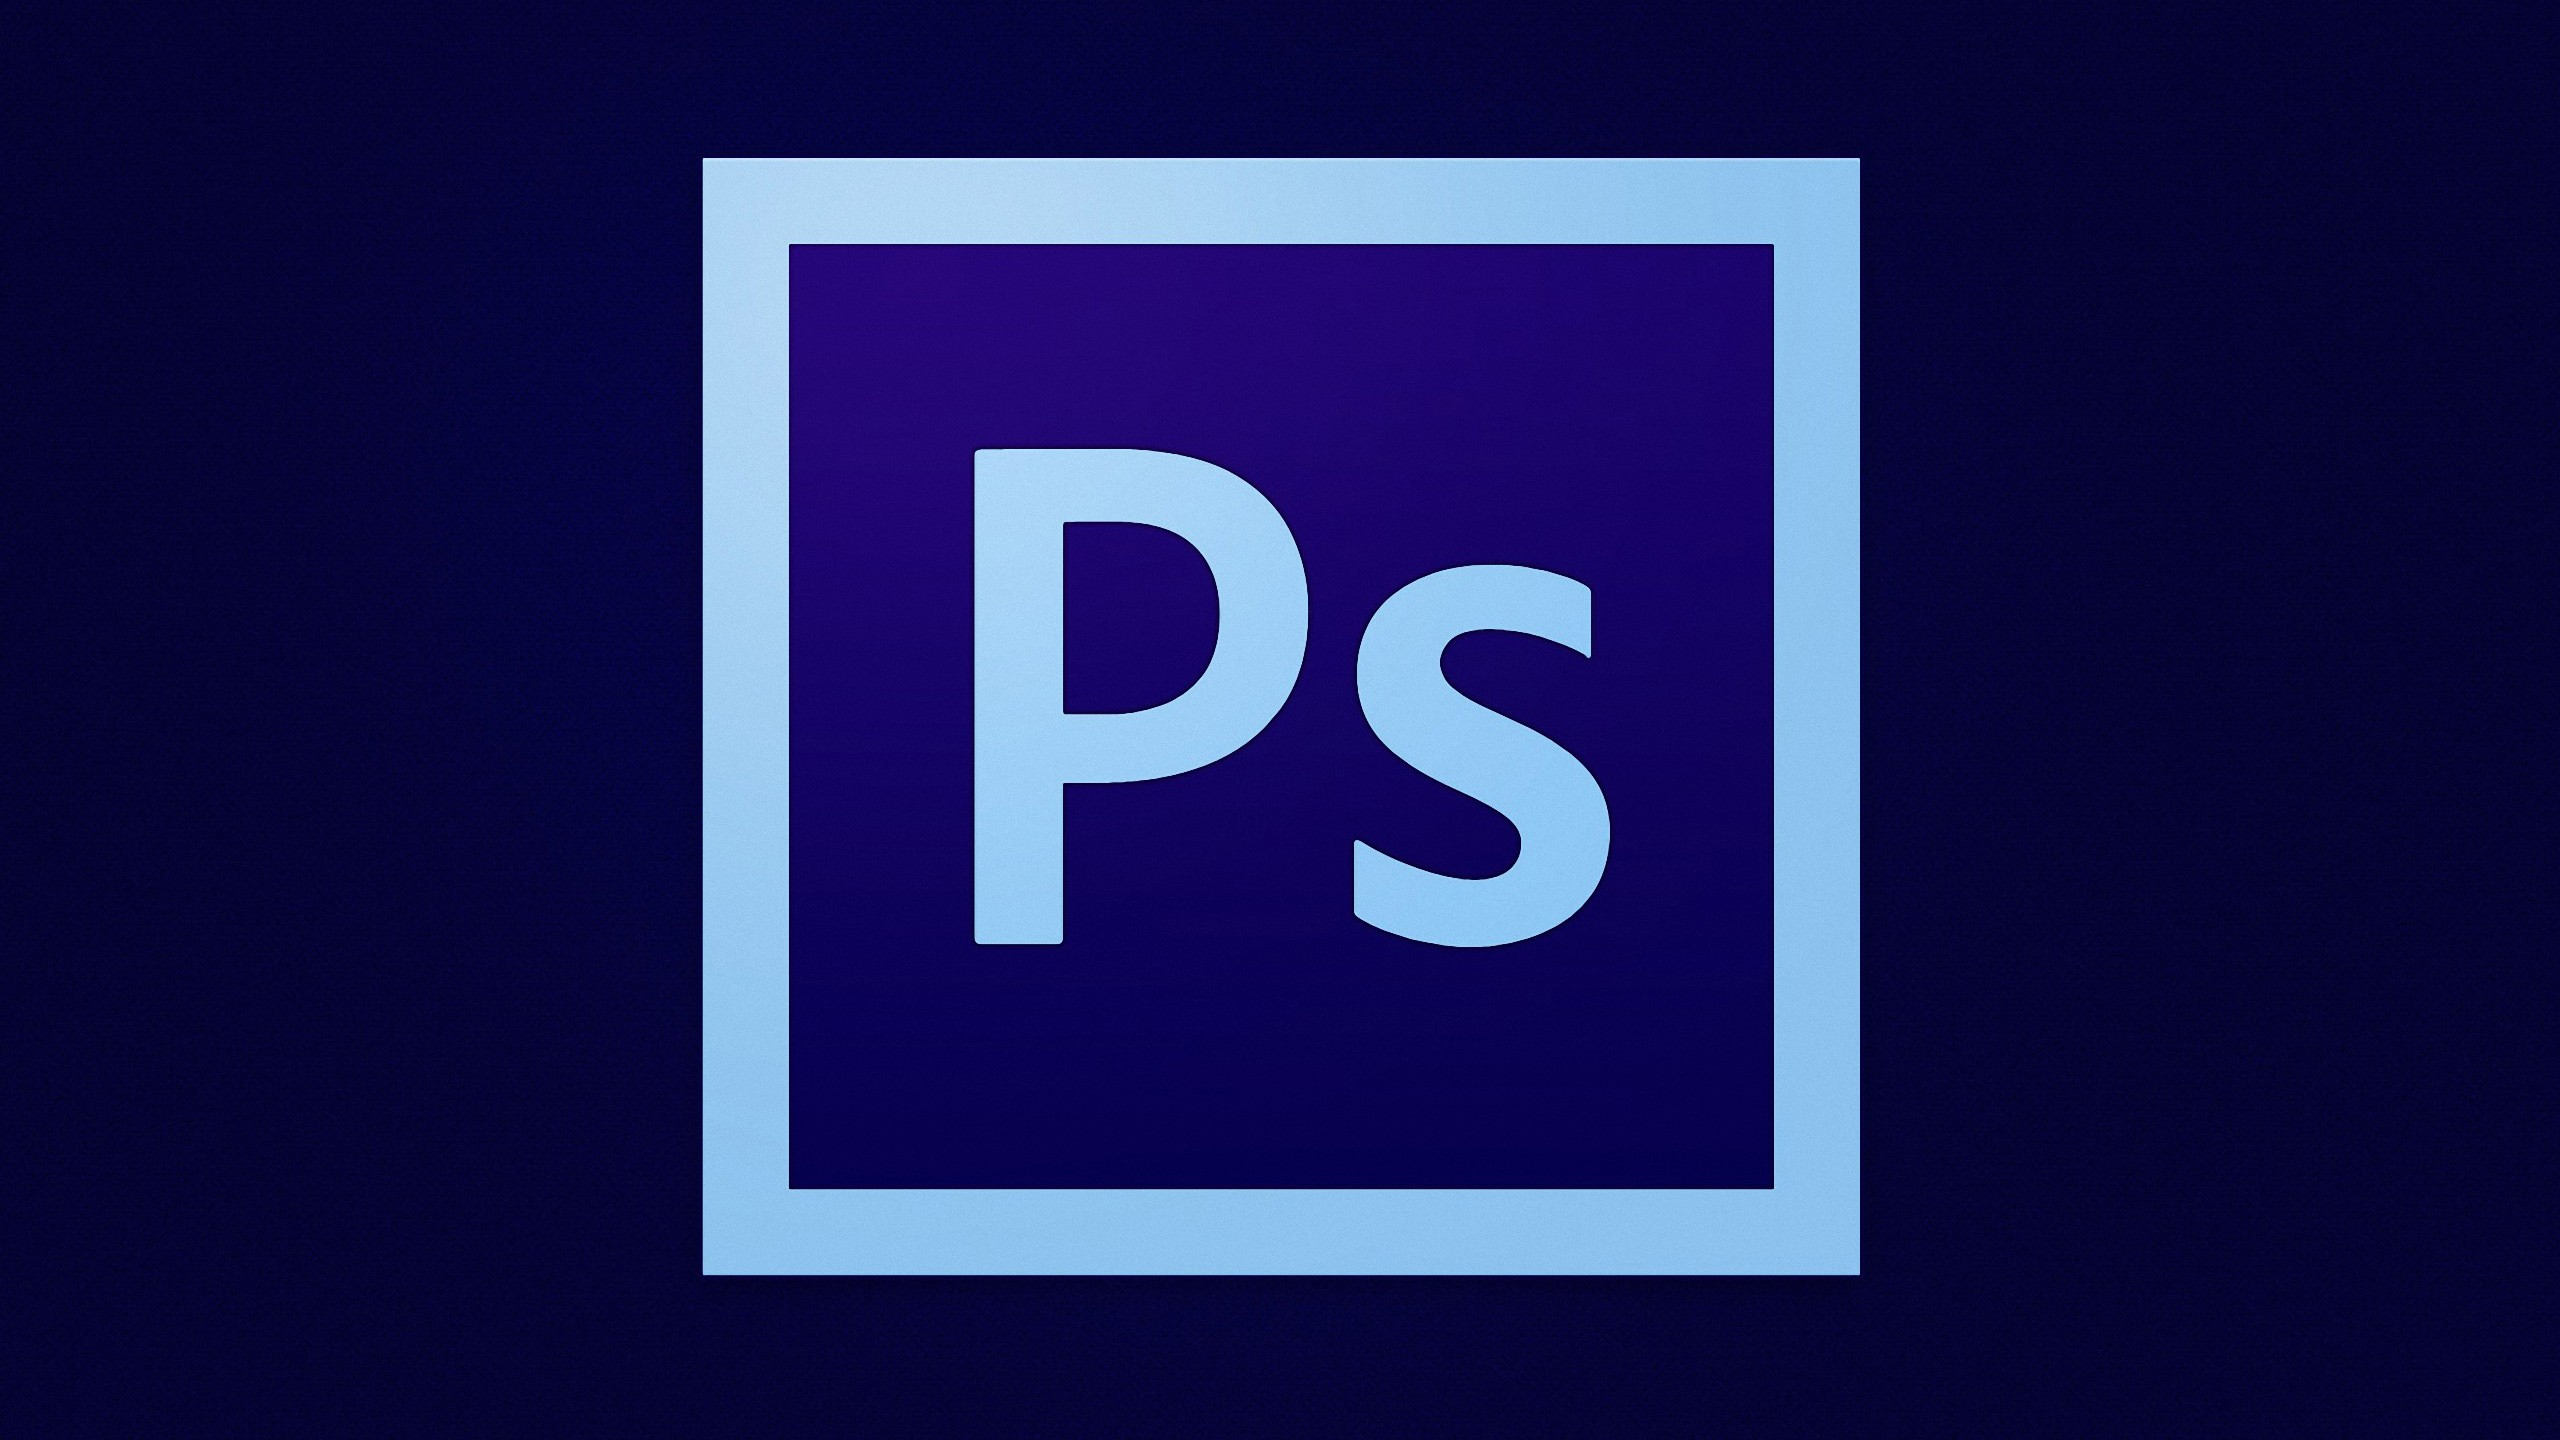 2560x1440 Adobe Photoshop Logo